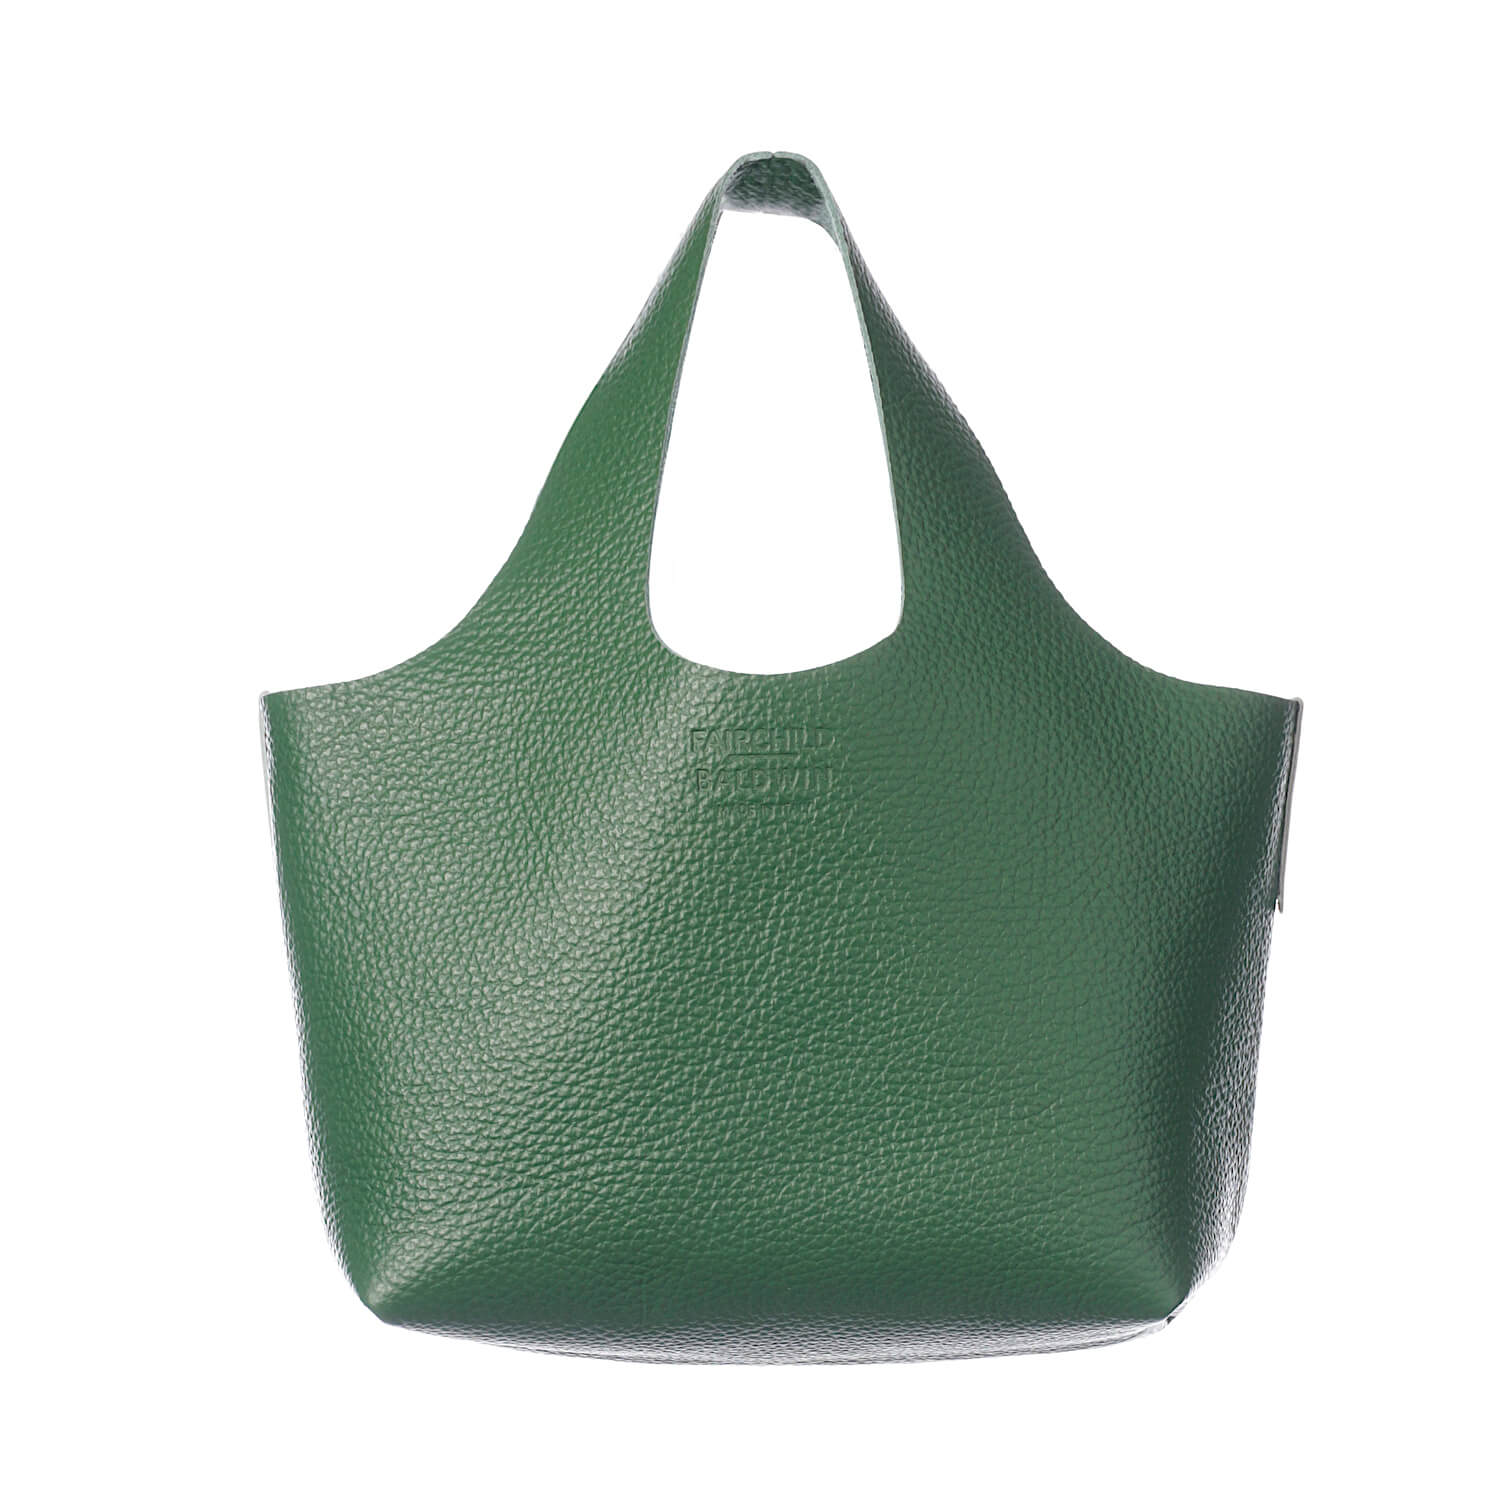 Jungle Green - Fairchild Baldwin - Handmade in Italy